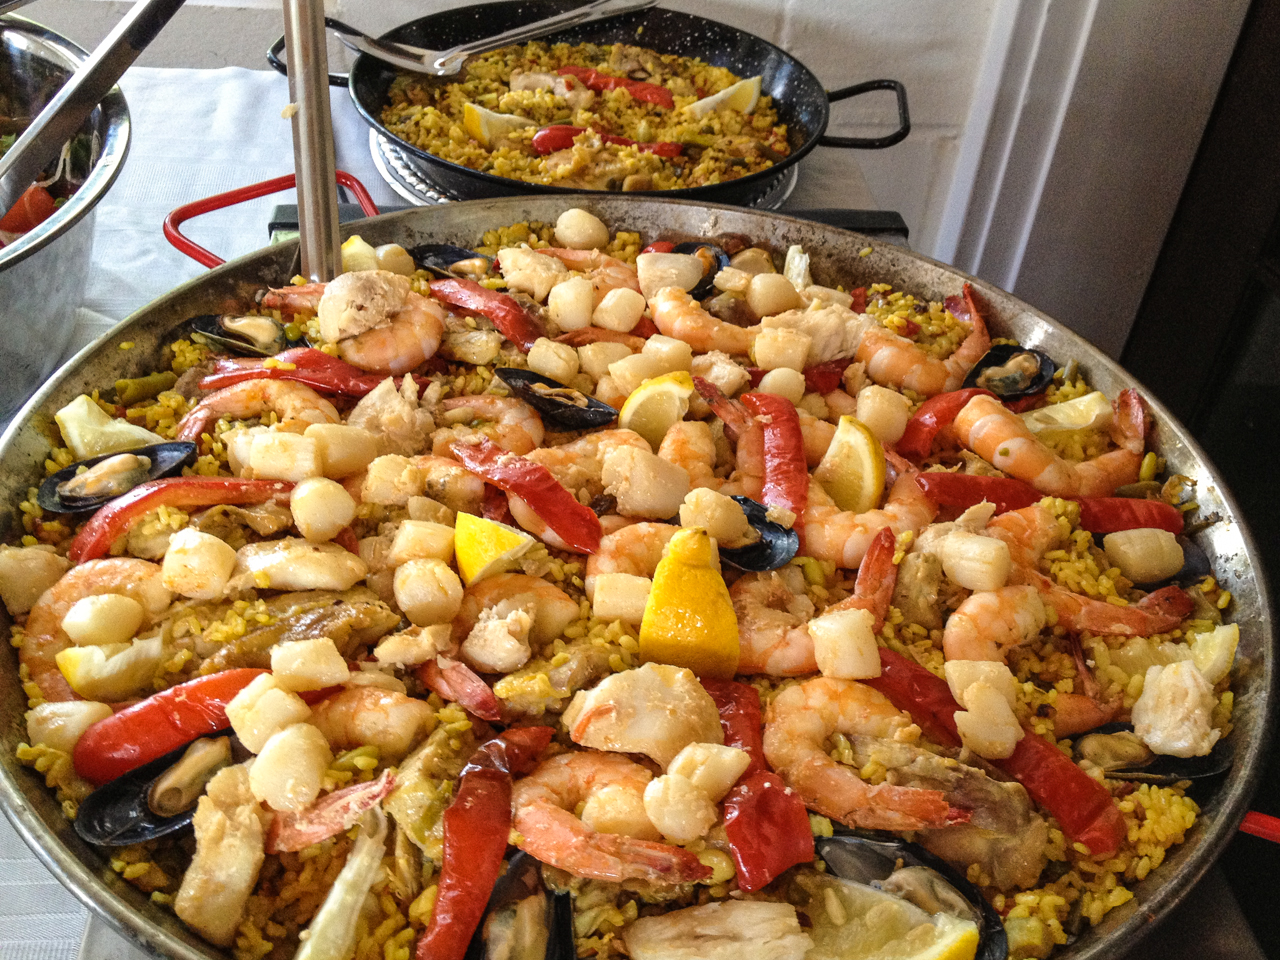 Real Paella with saffron rice